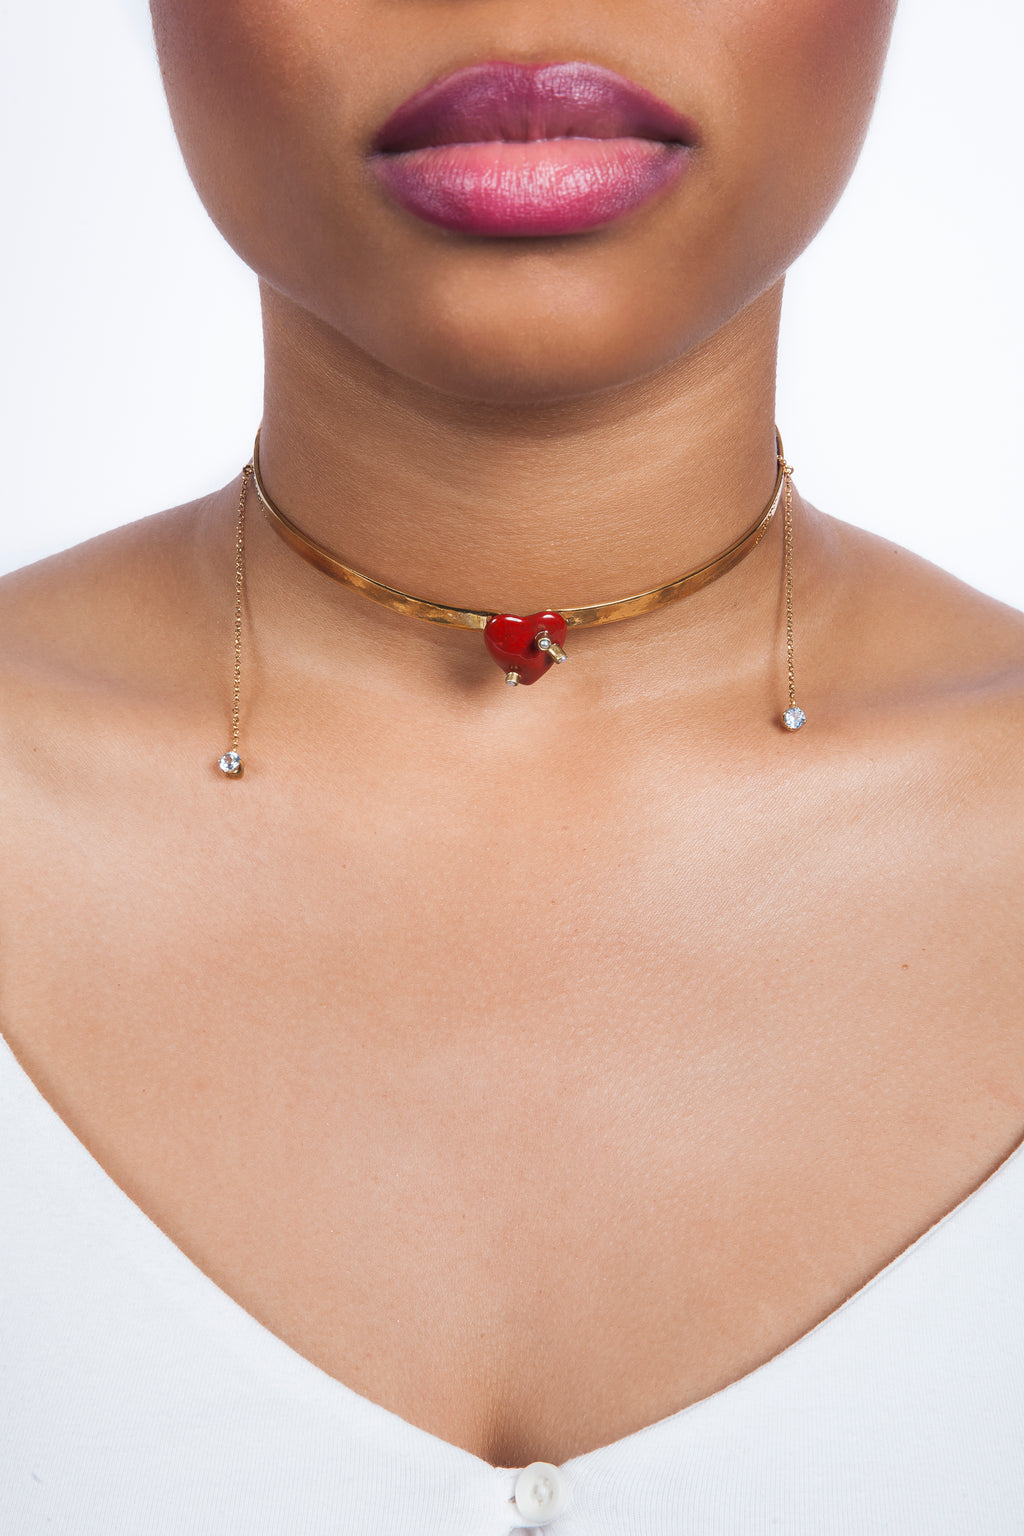 Beatriz Palacios Enamel Heart Choker Necklace